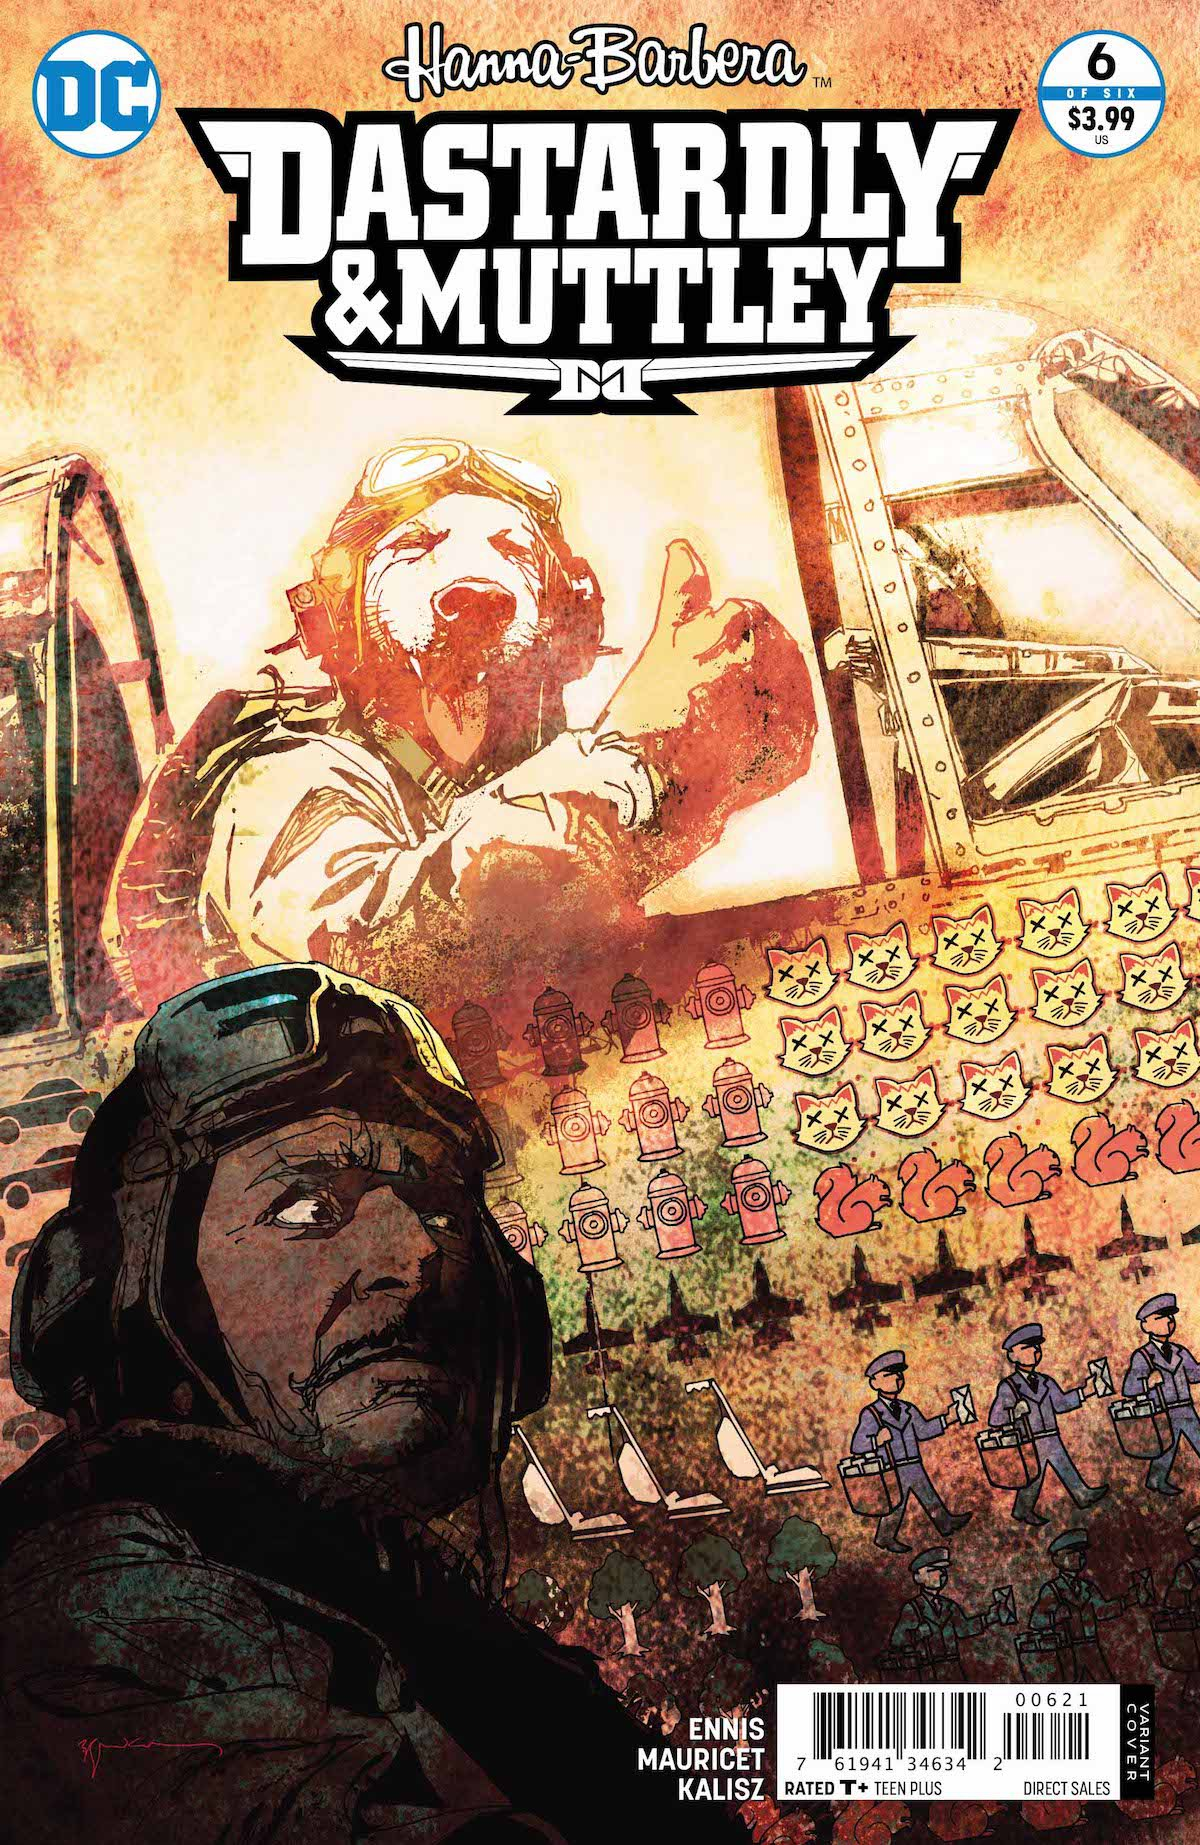 Dastardly and Muttley #6 variant cover